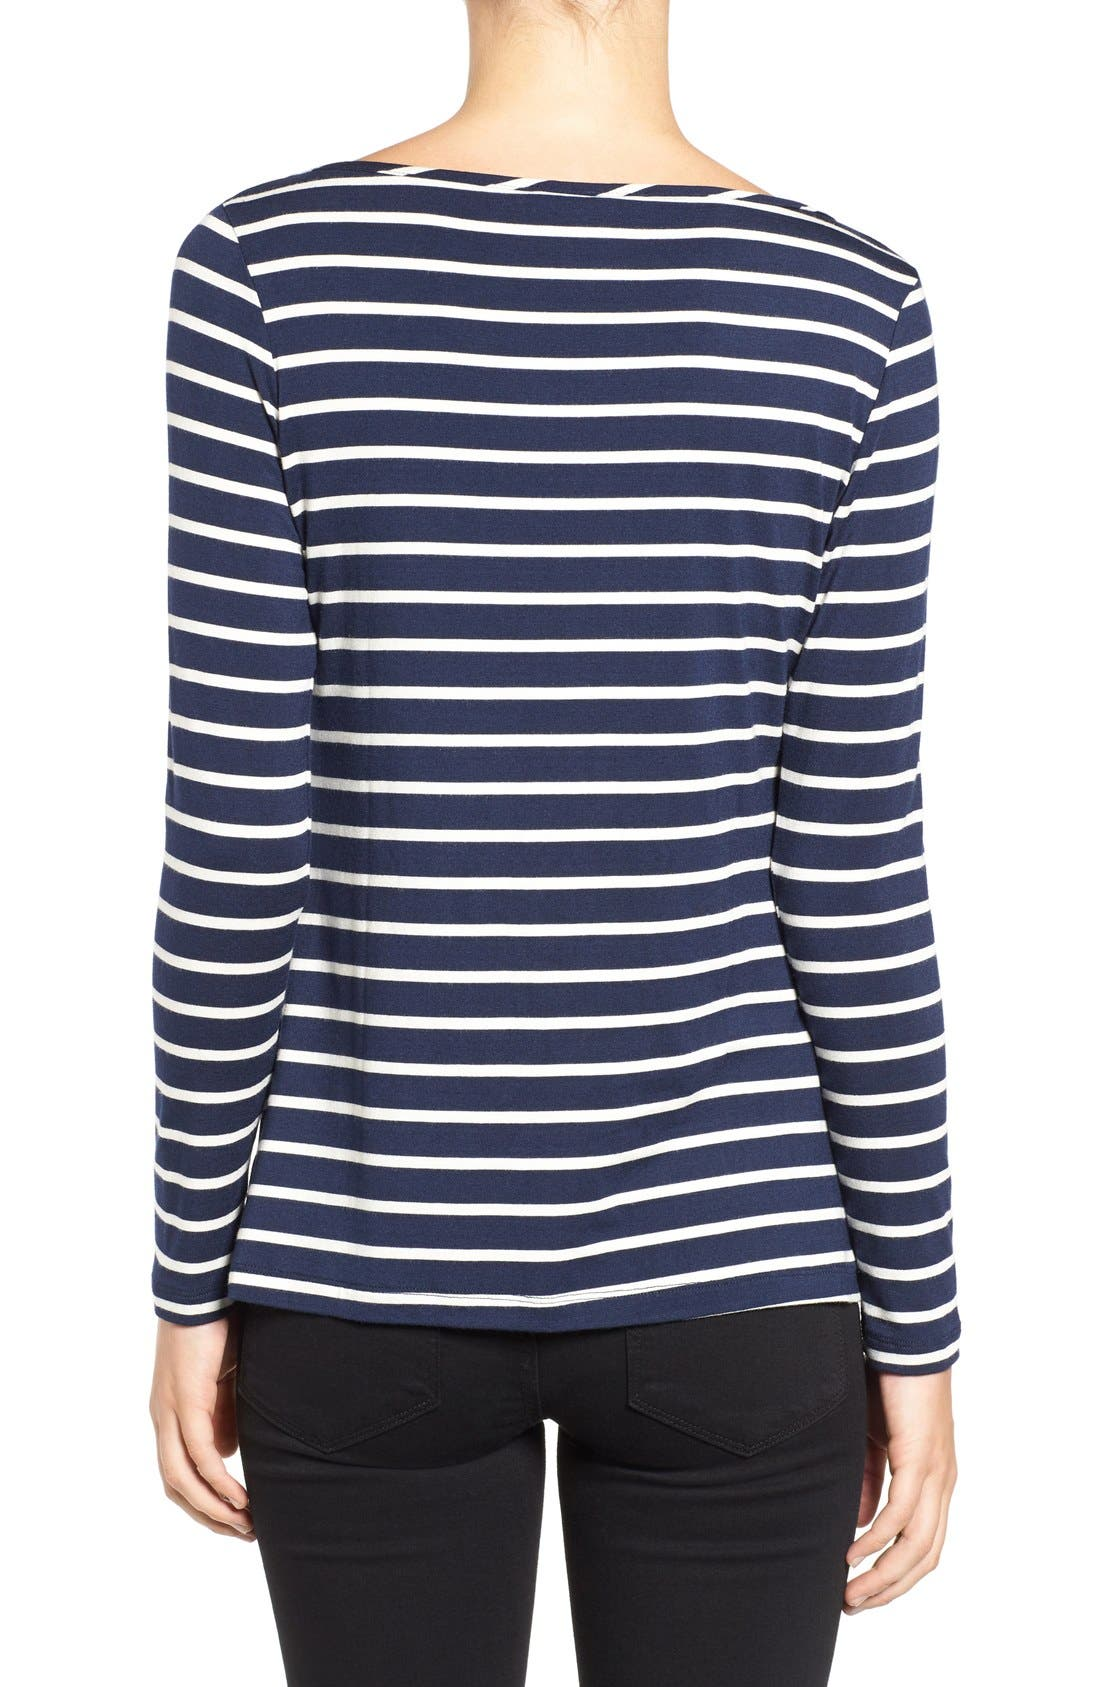 Francoise Stripe Top,                             Alternate thumbnail 2, color,                             Basque Stripe